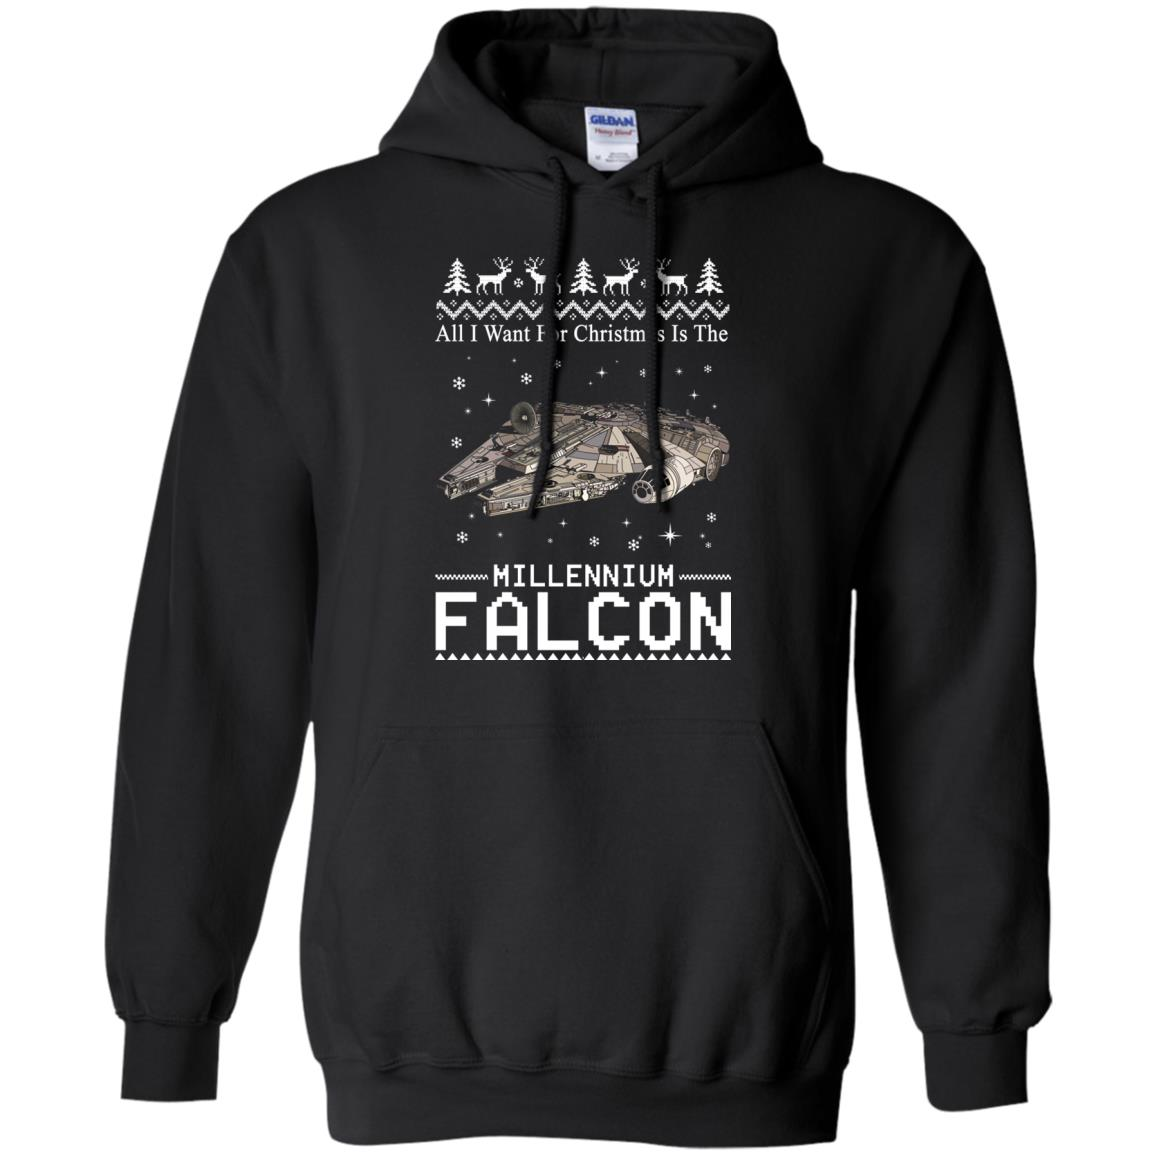 image 2135 - All I Want For Christmas is The Millennium Falcon Sweater, Ugly Sweatshirt